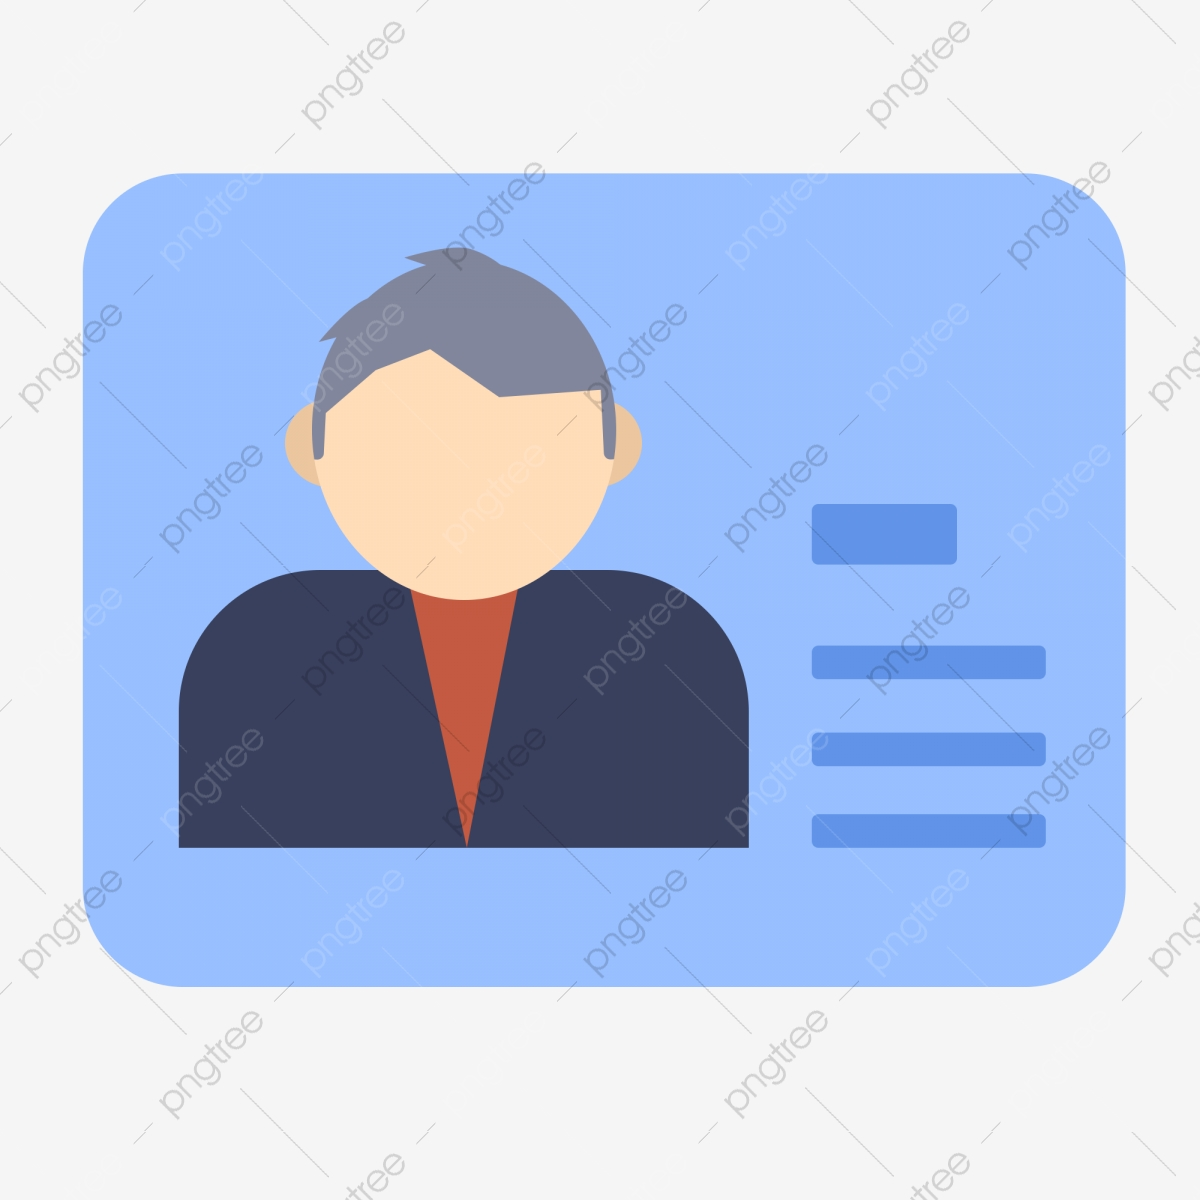 Business Manager White Stock Illustrations – 103,233 Business Manager White  Stock Illustrations, Vectors & Clipart - Dreamstime